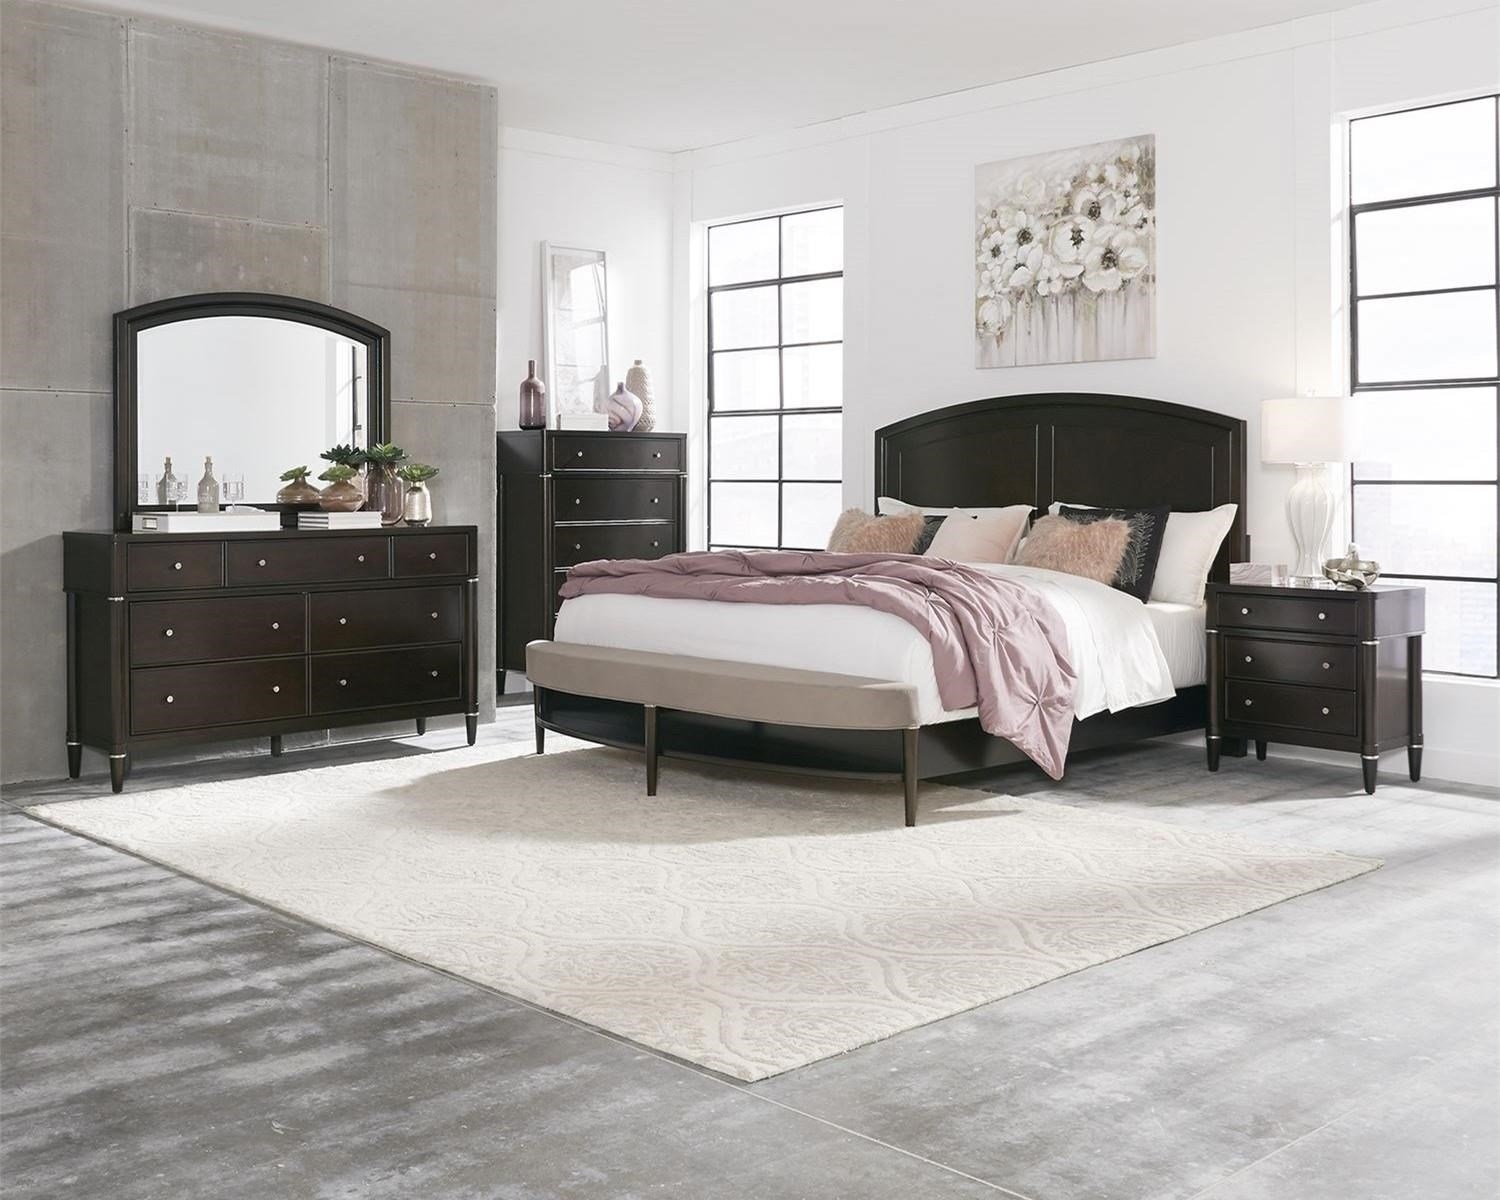 425-BR 5 PC King Group